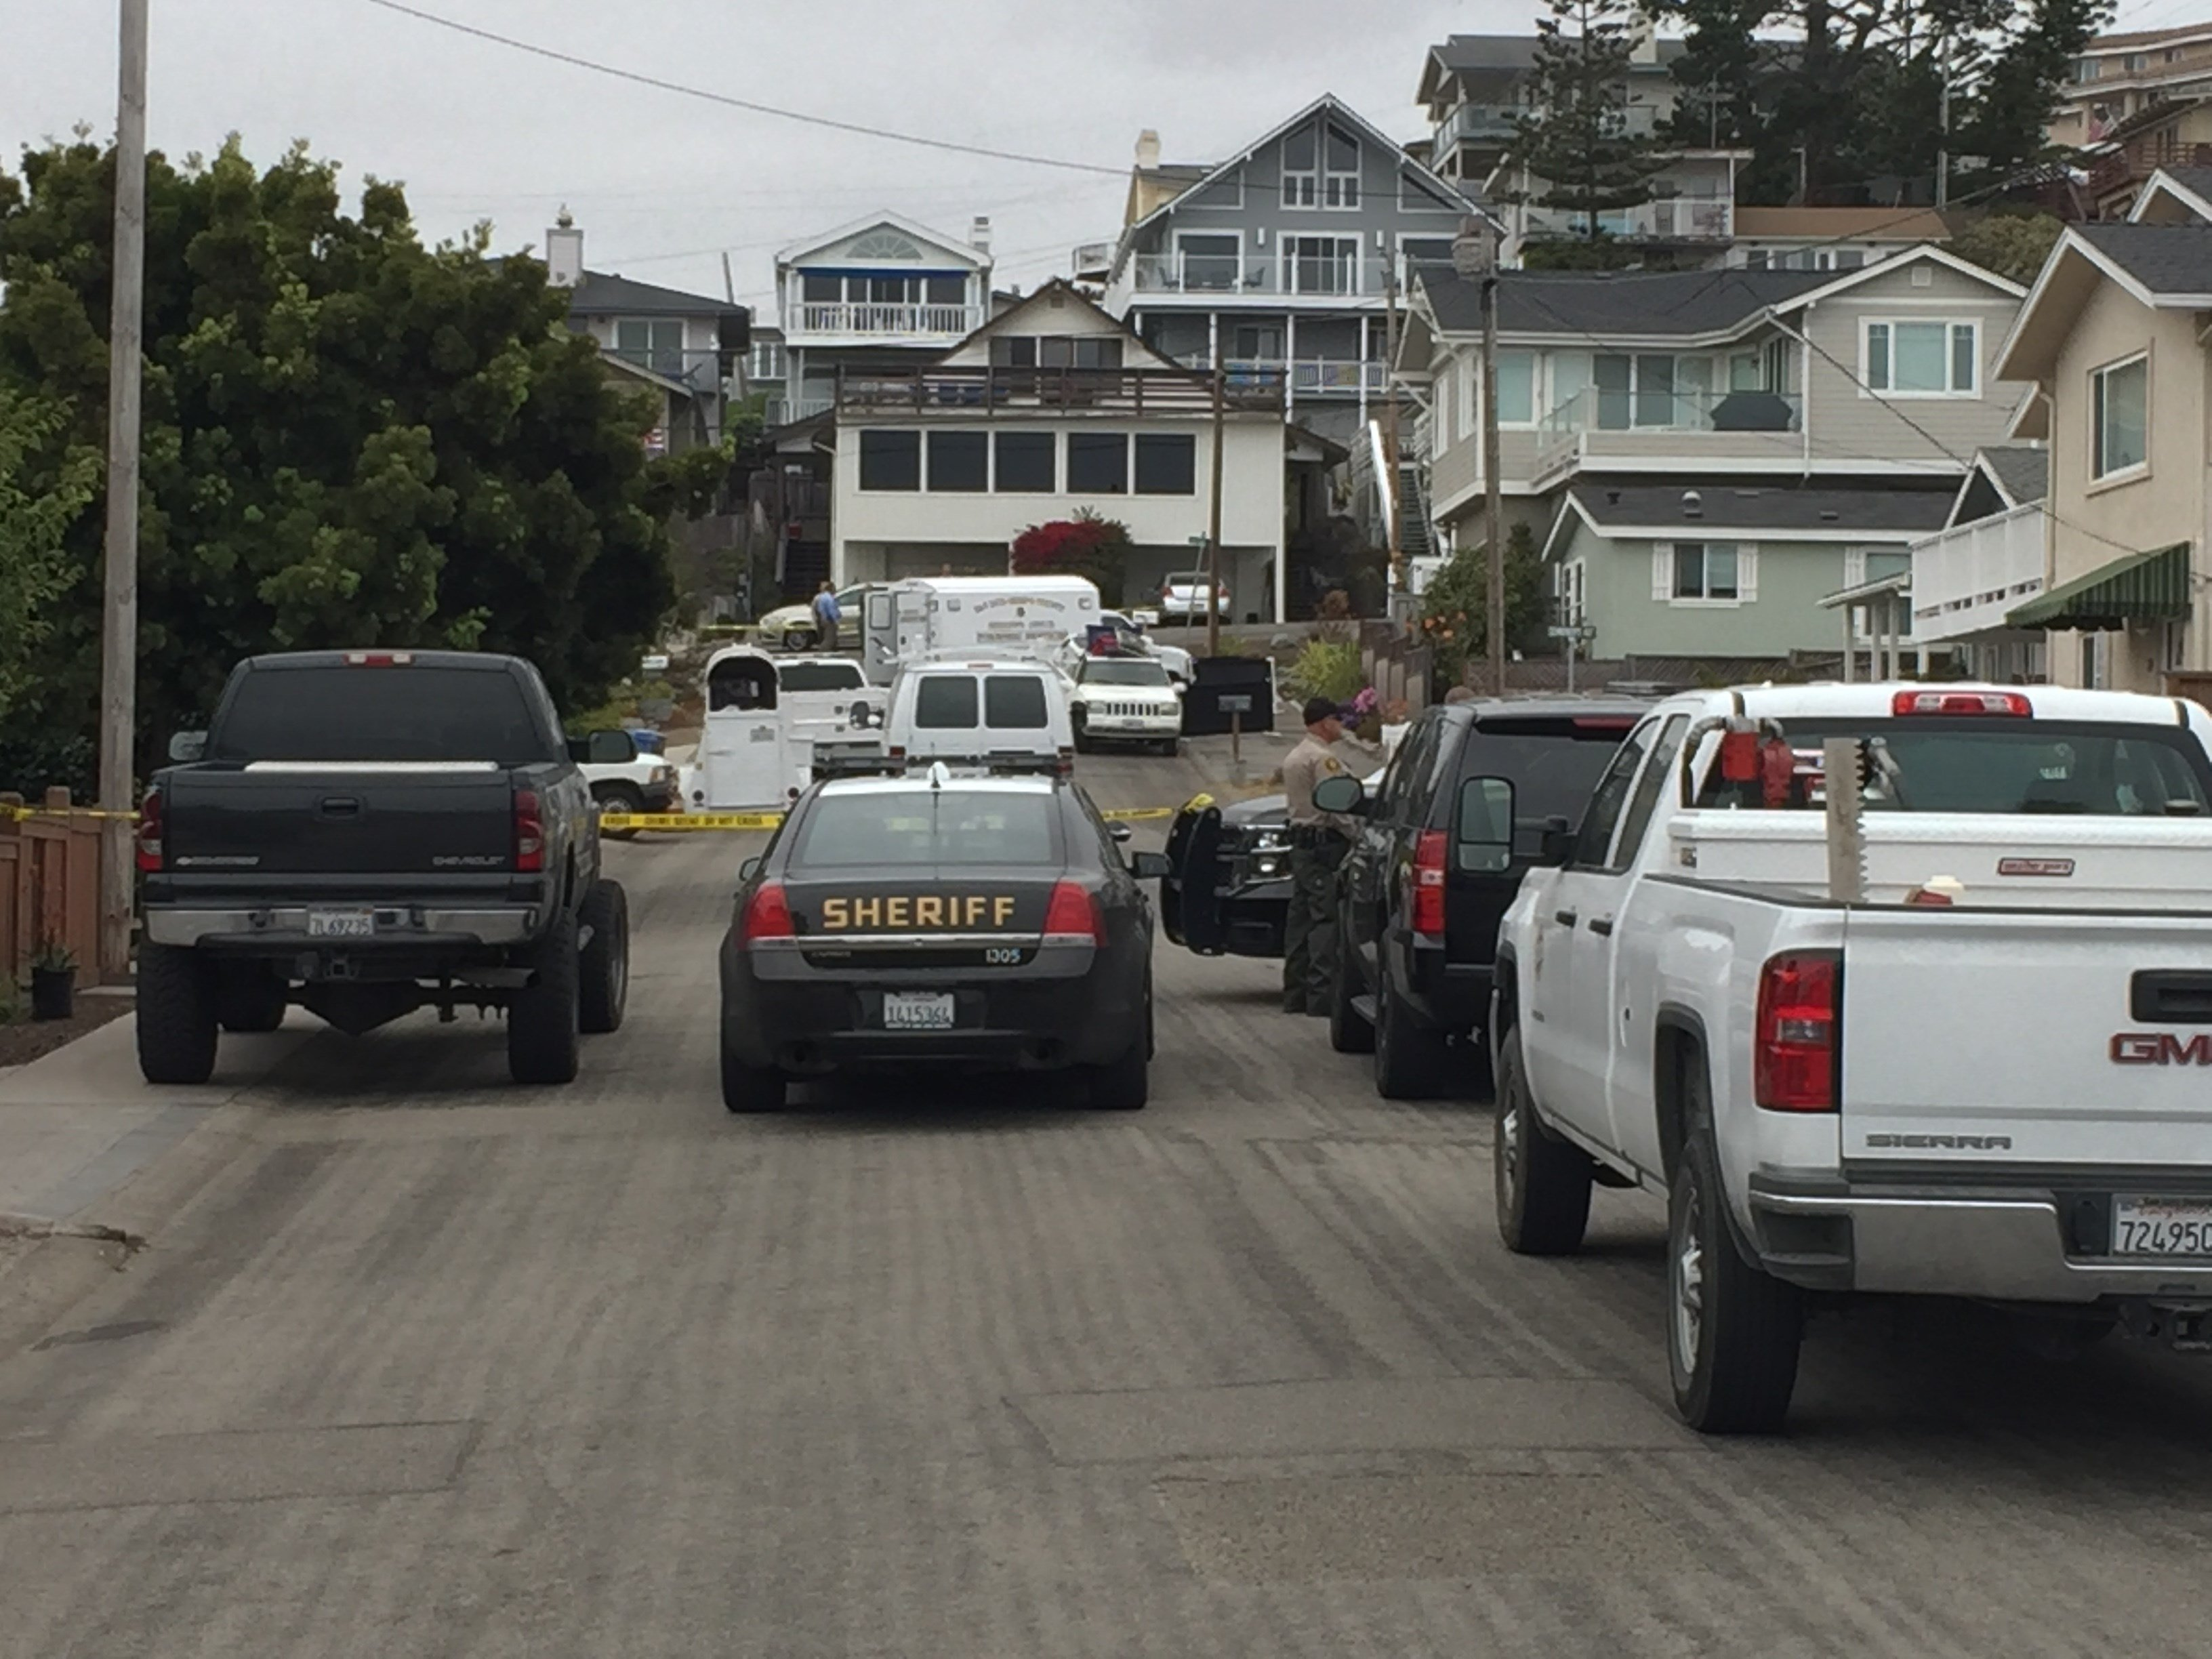 Man found dead in back of SUV in Cayucos identified